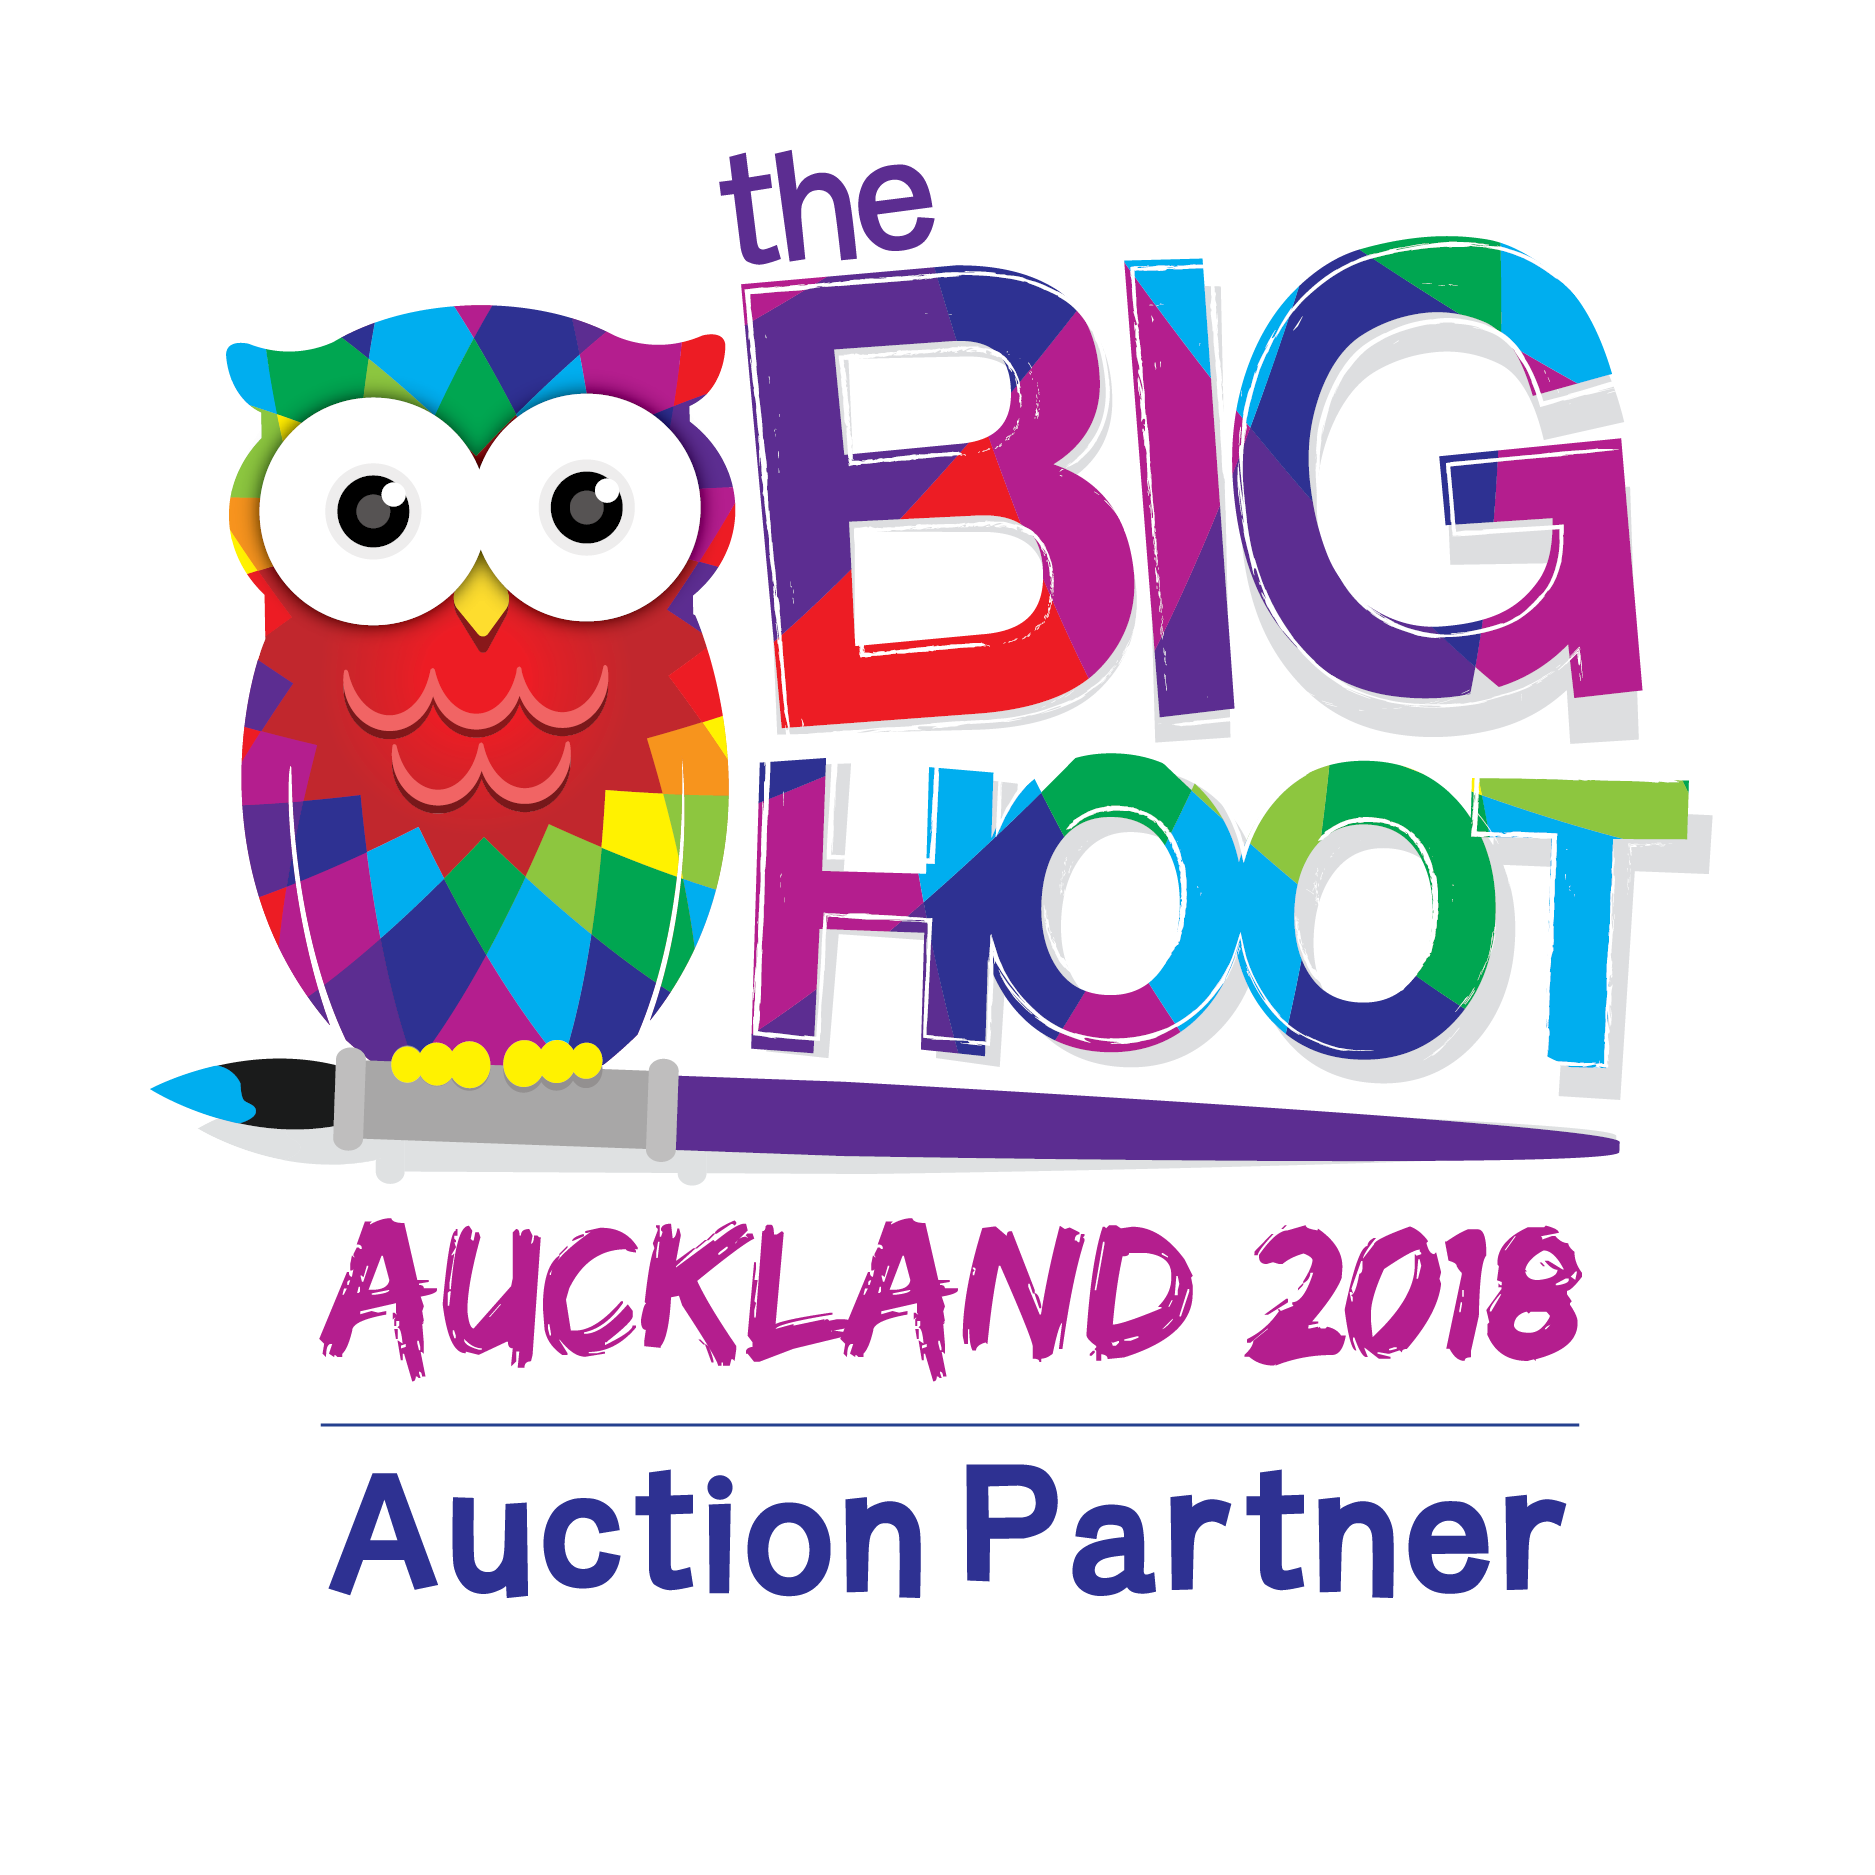 Auction Partner - The Big Hoot